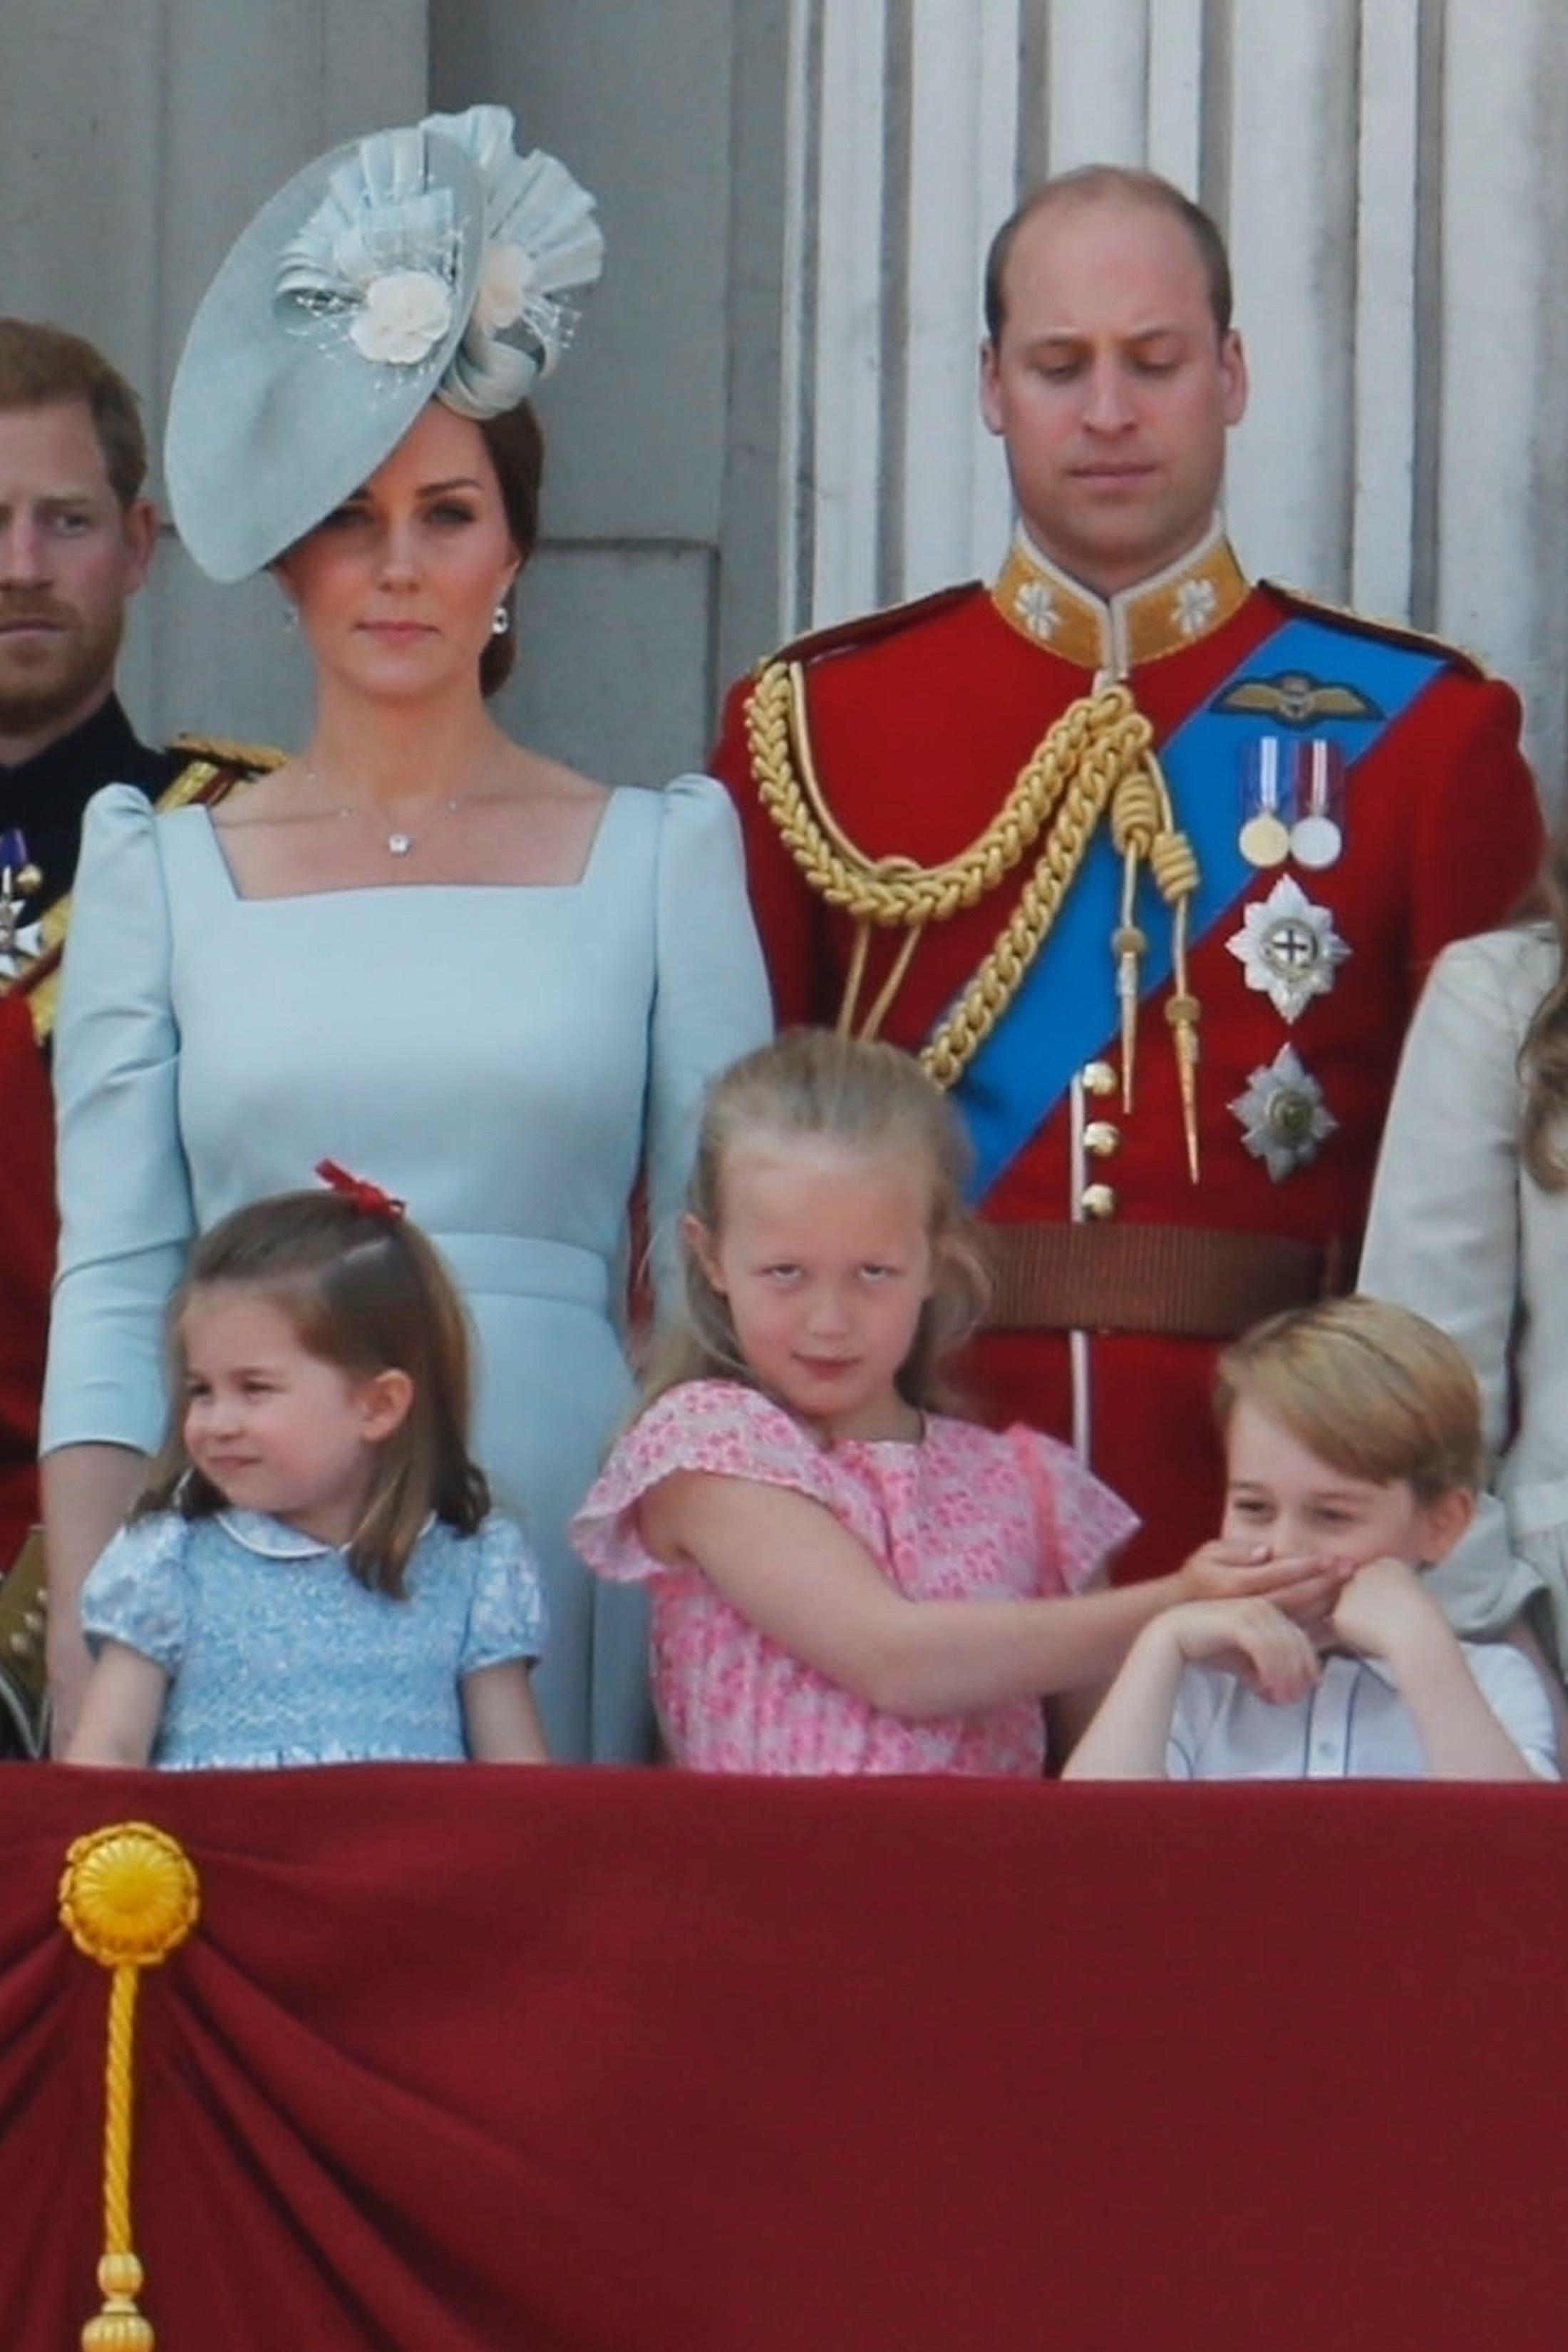 The Royal Family celebrates the Queen's official birthday by attending the Trooping of the Colour at Buckingham Palace in London on June 9, 2018.